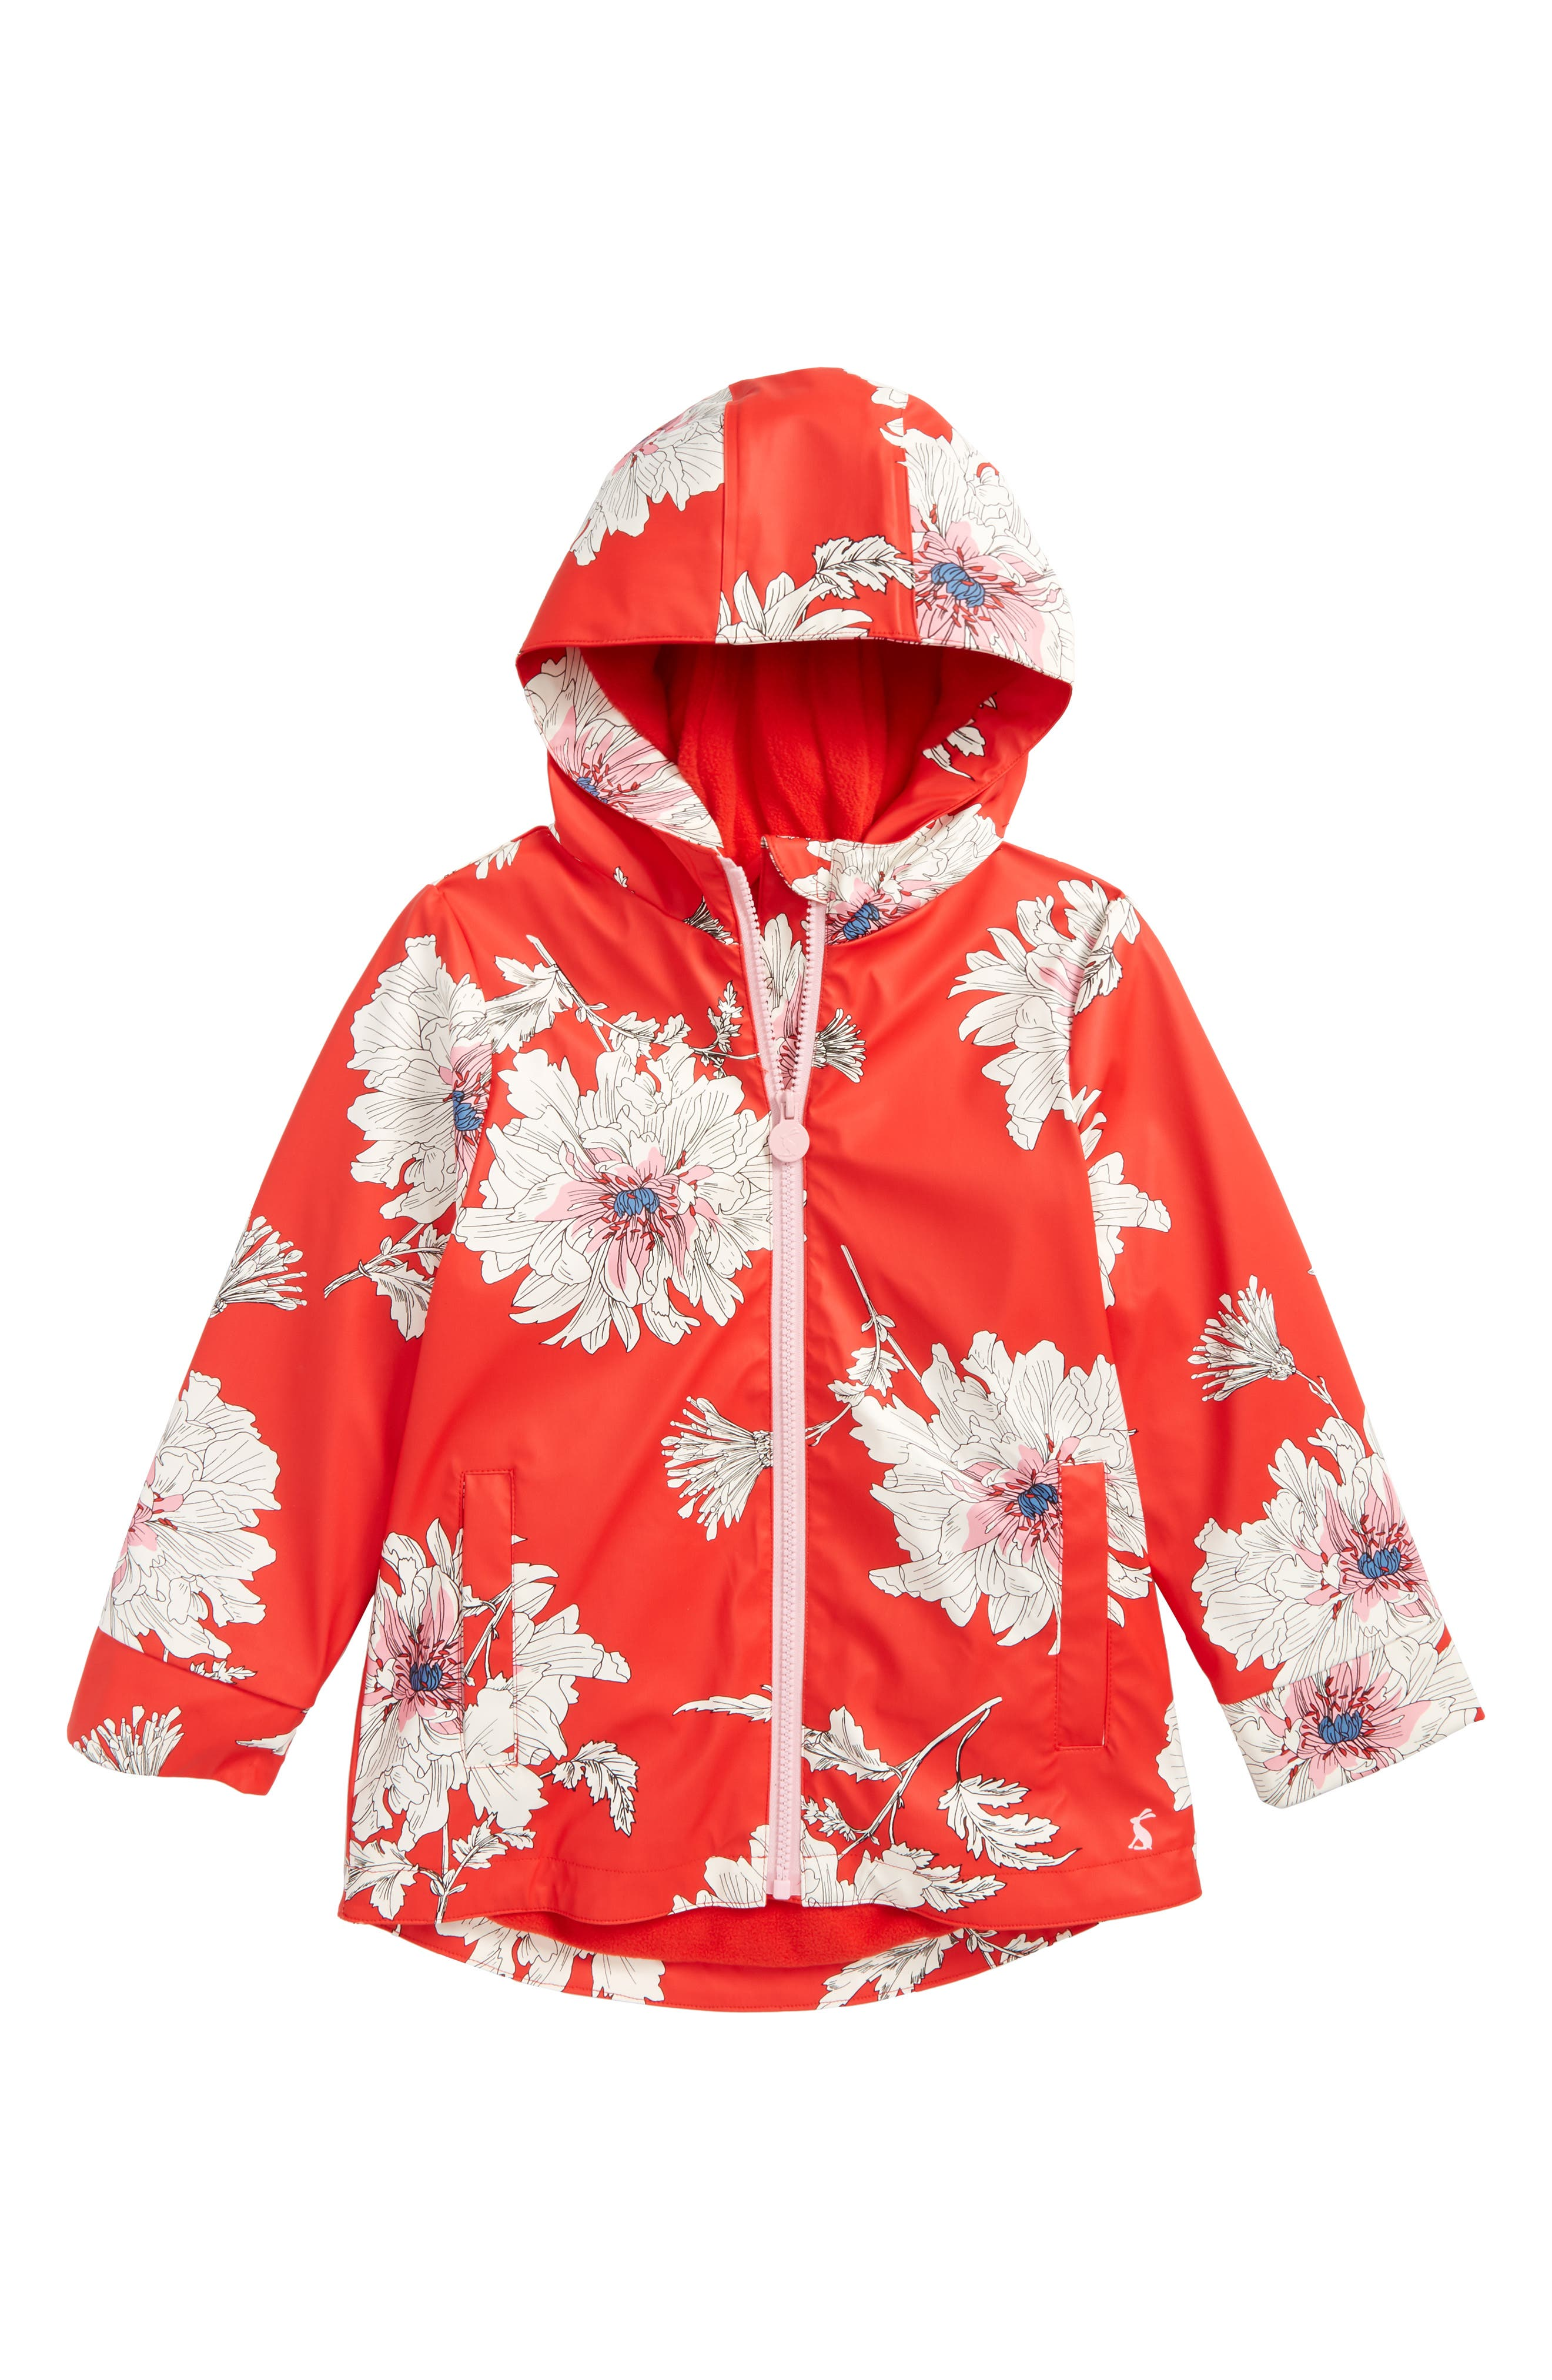 Fleece Lined Rain Jacket,                         Main,                         color, Red Peony Floral